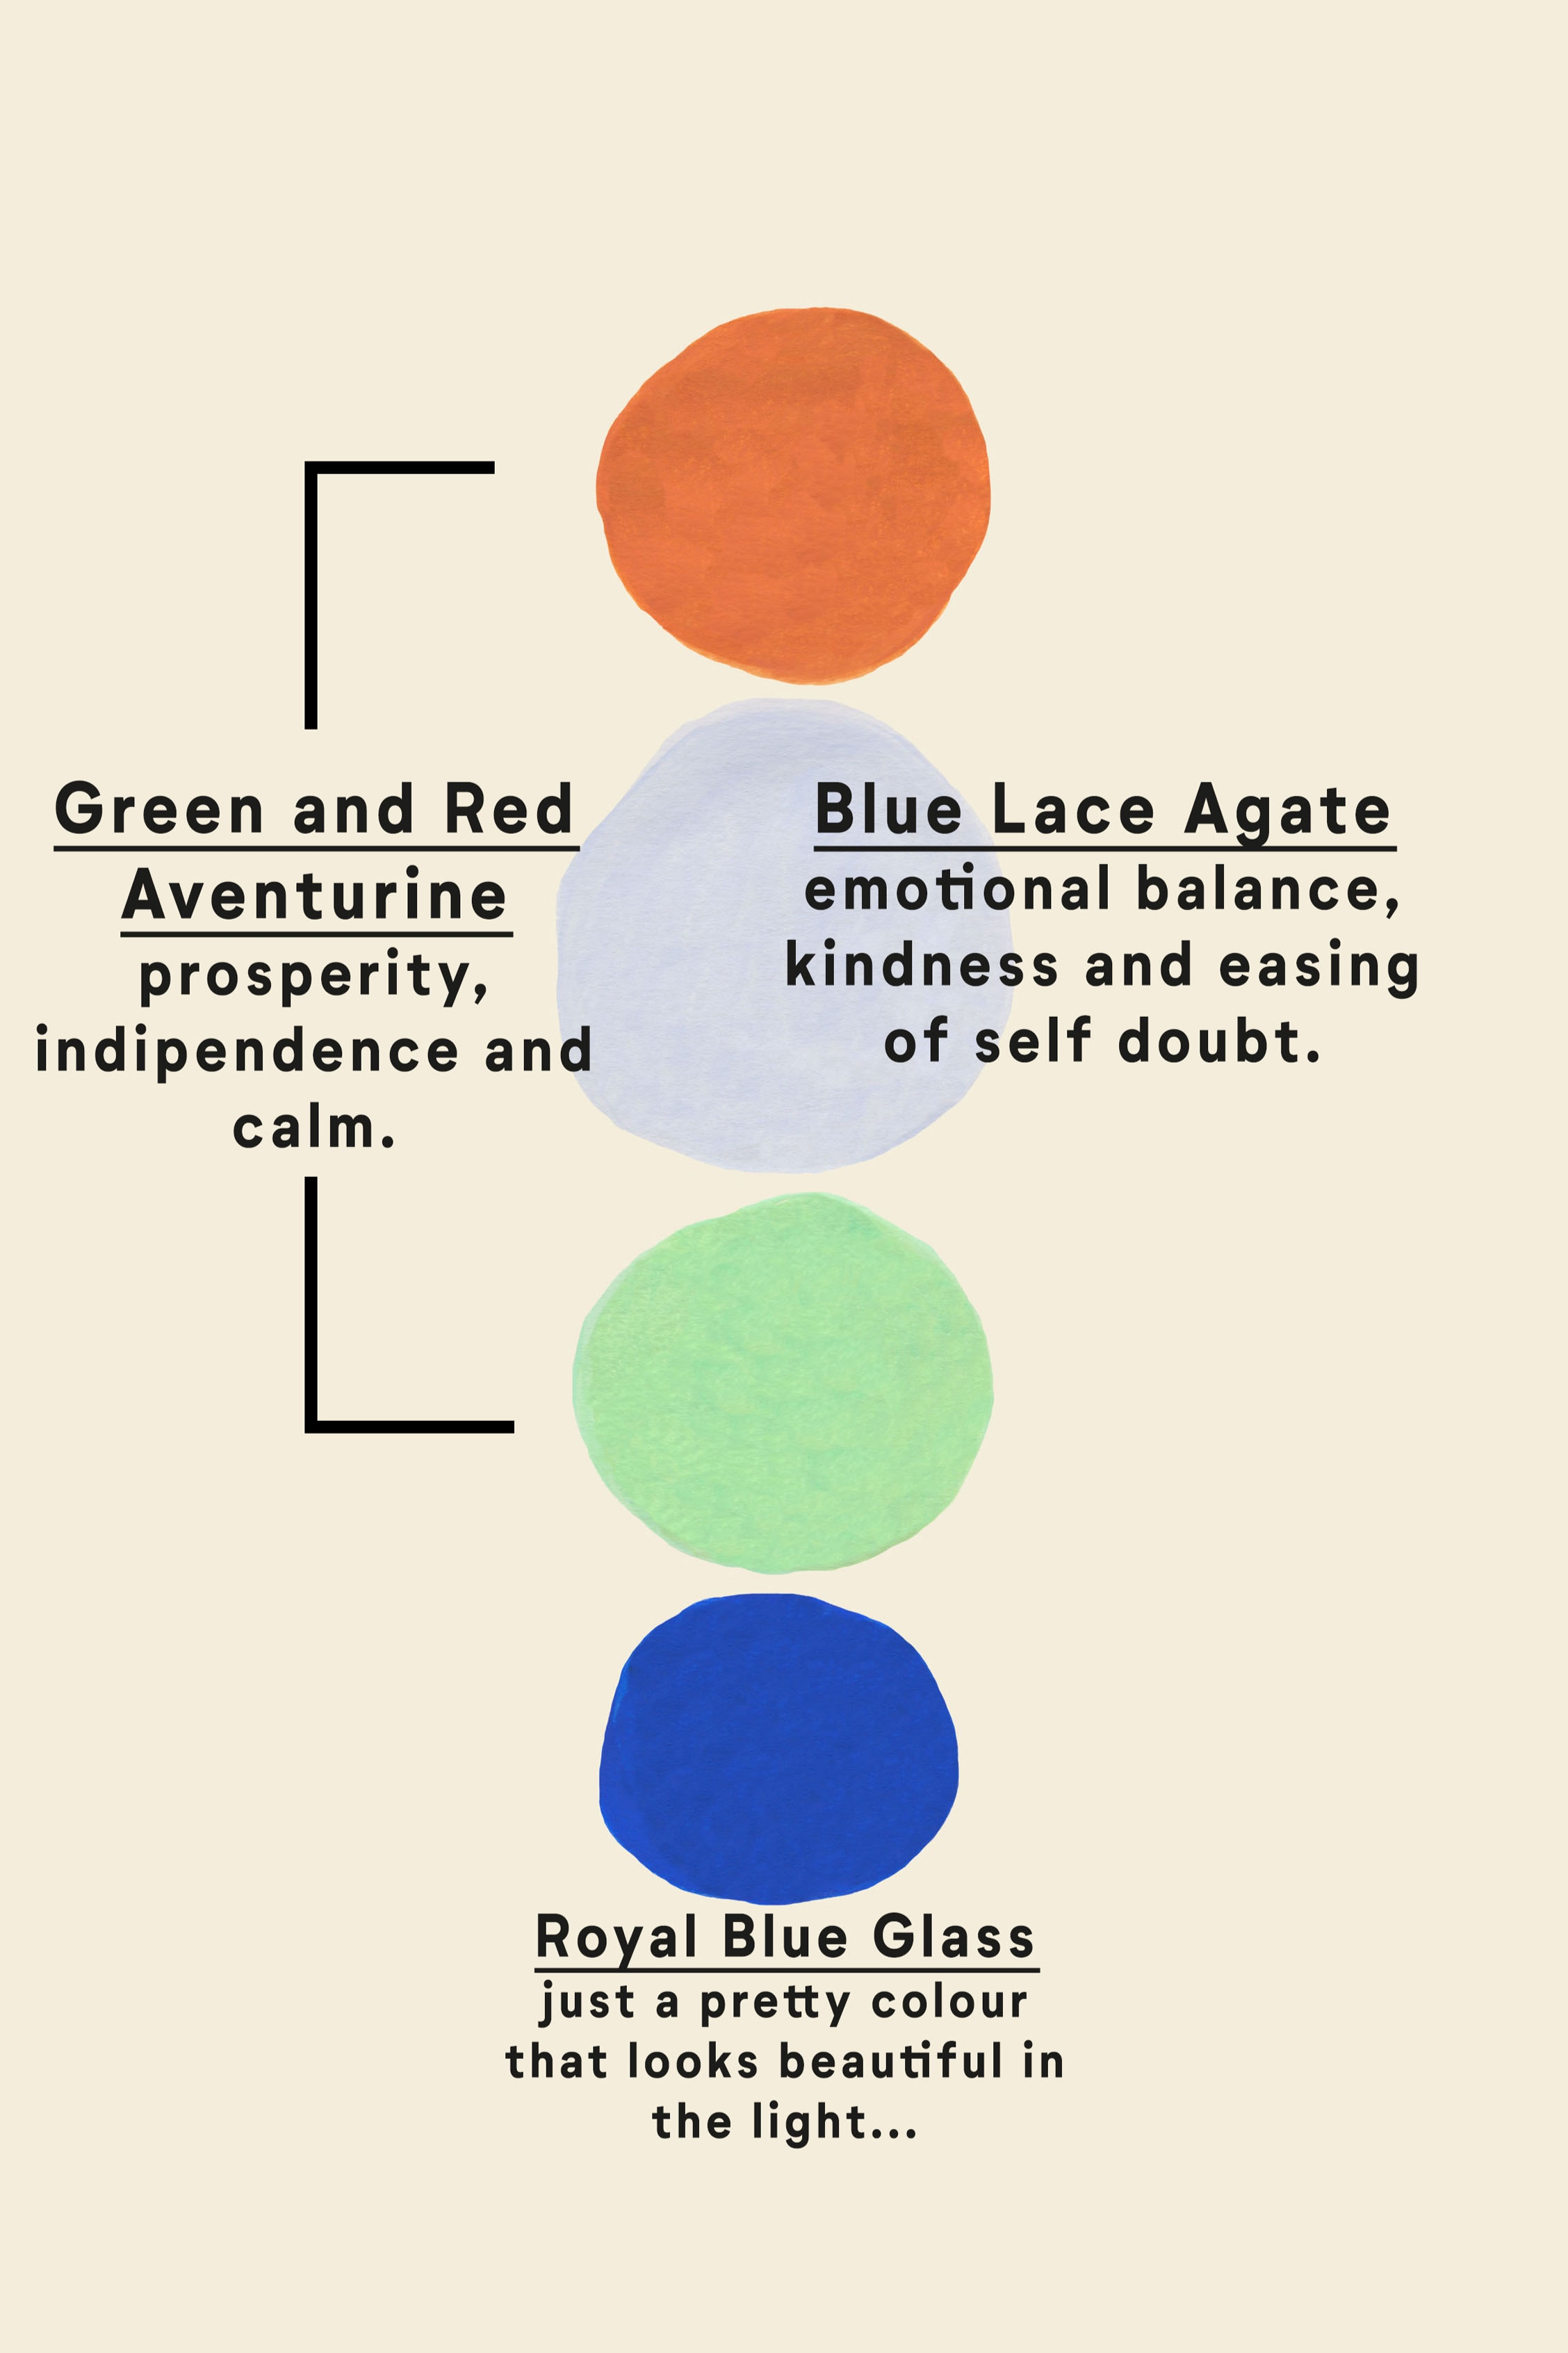 red+and+green+aventurine%2C+blue+lace+agate.jpg